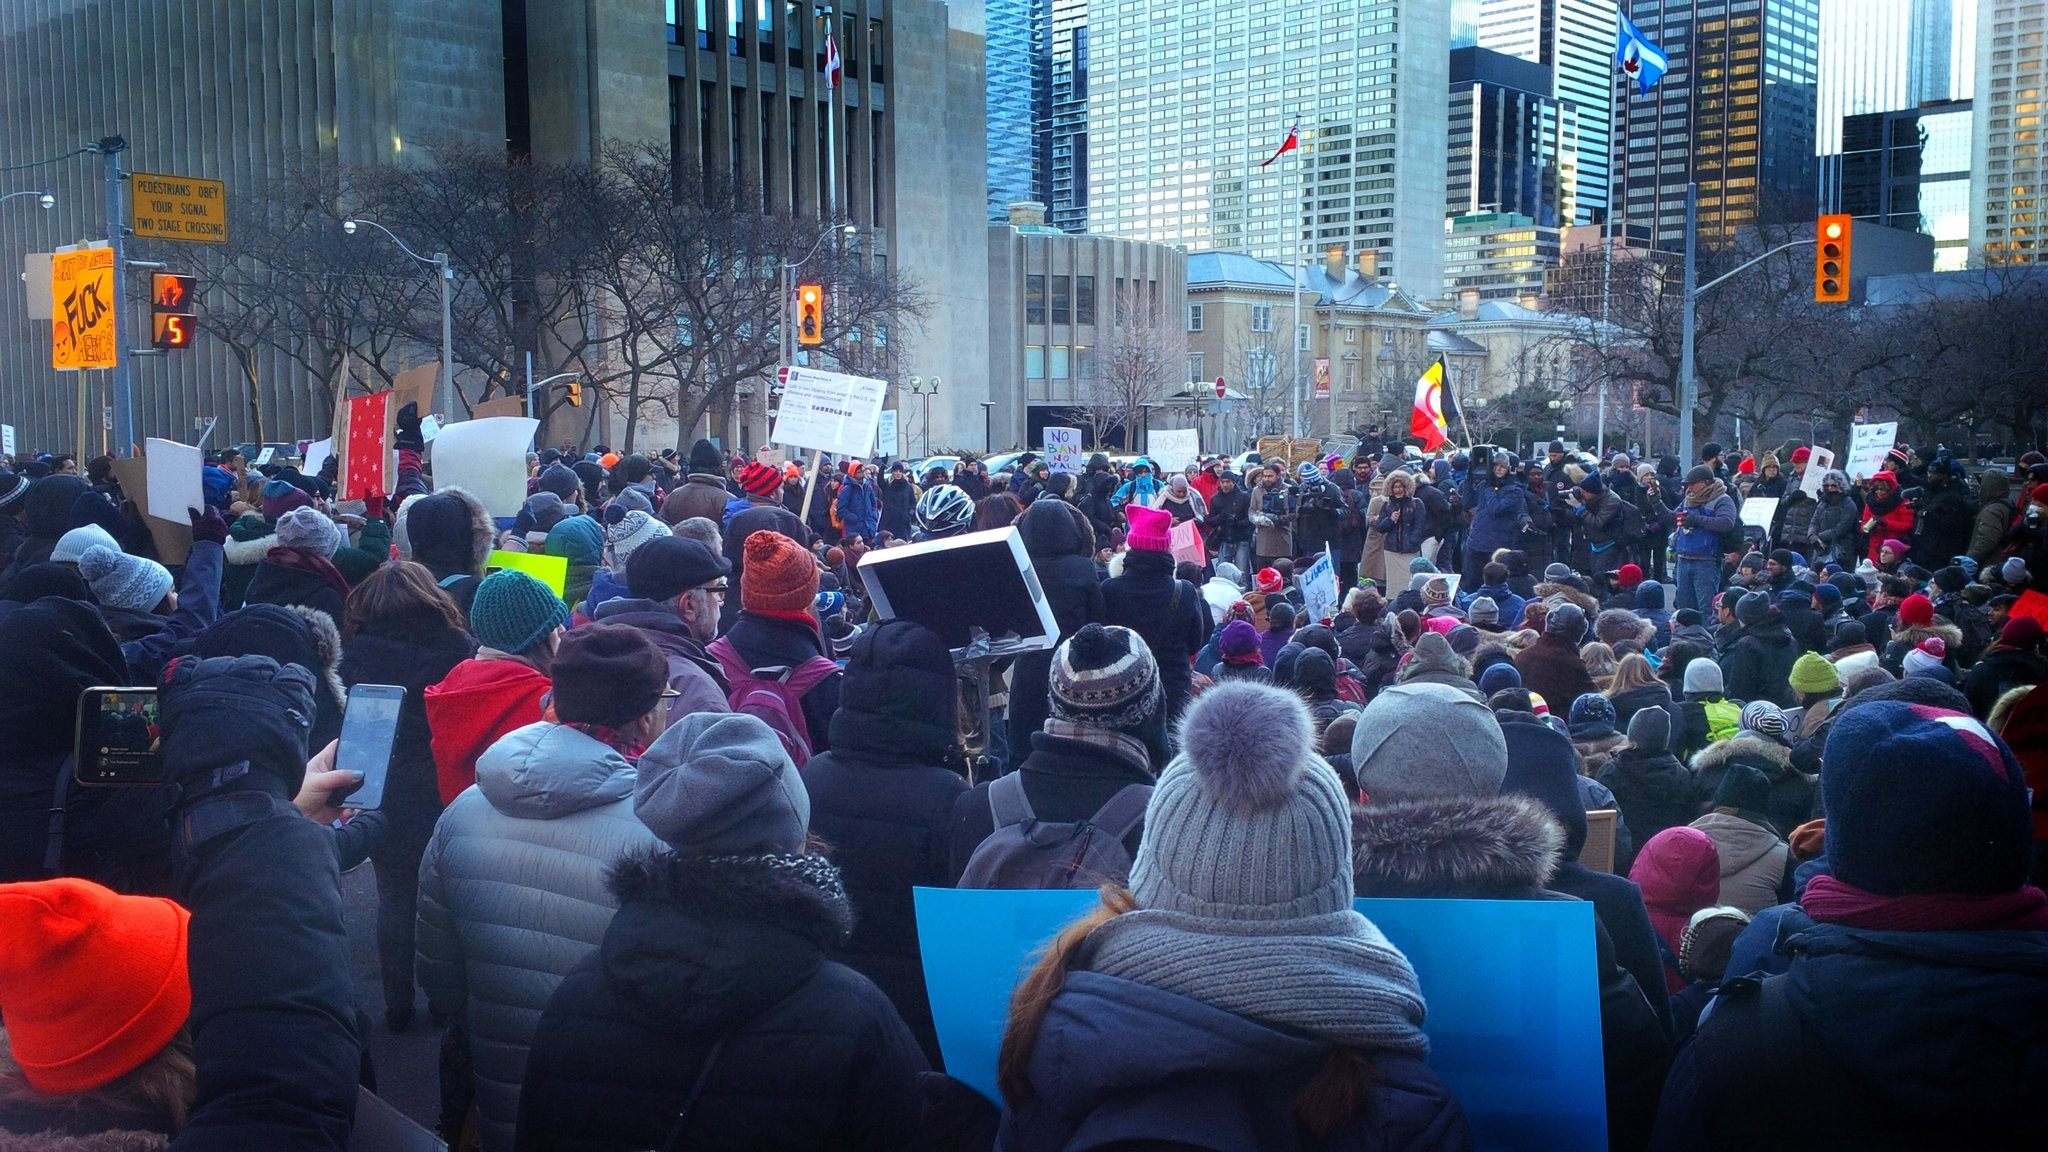 A massive demonstration is taking place at the U.S. Consulate General in Toronto right now